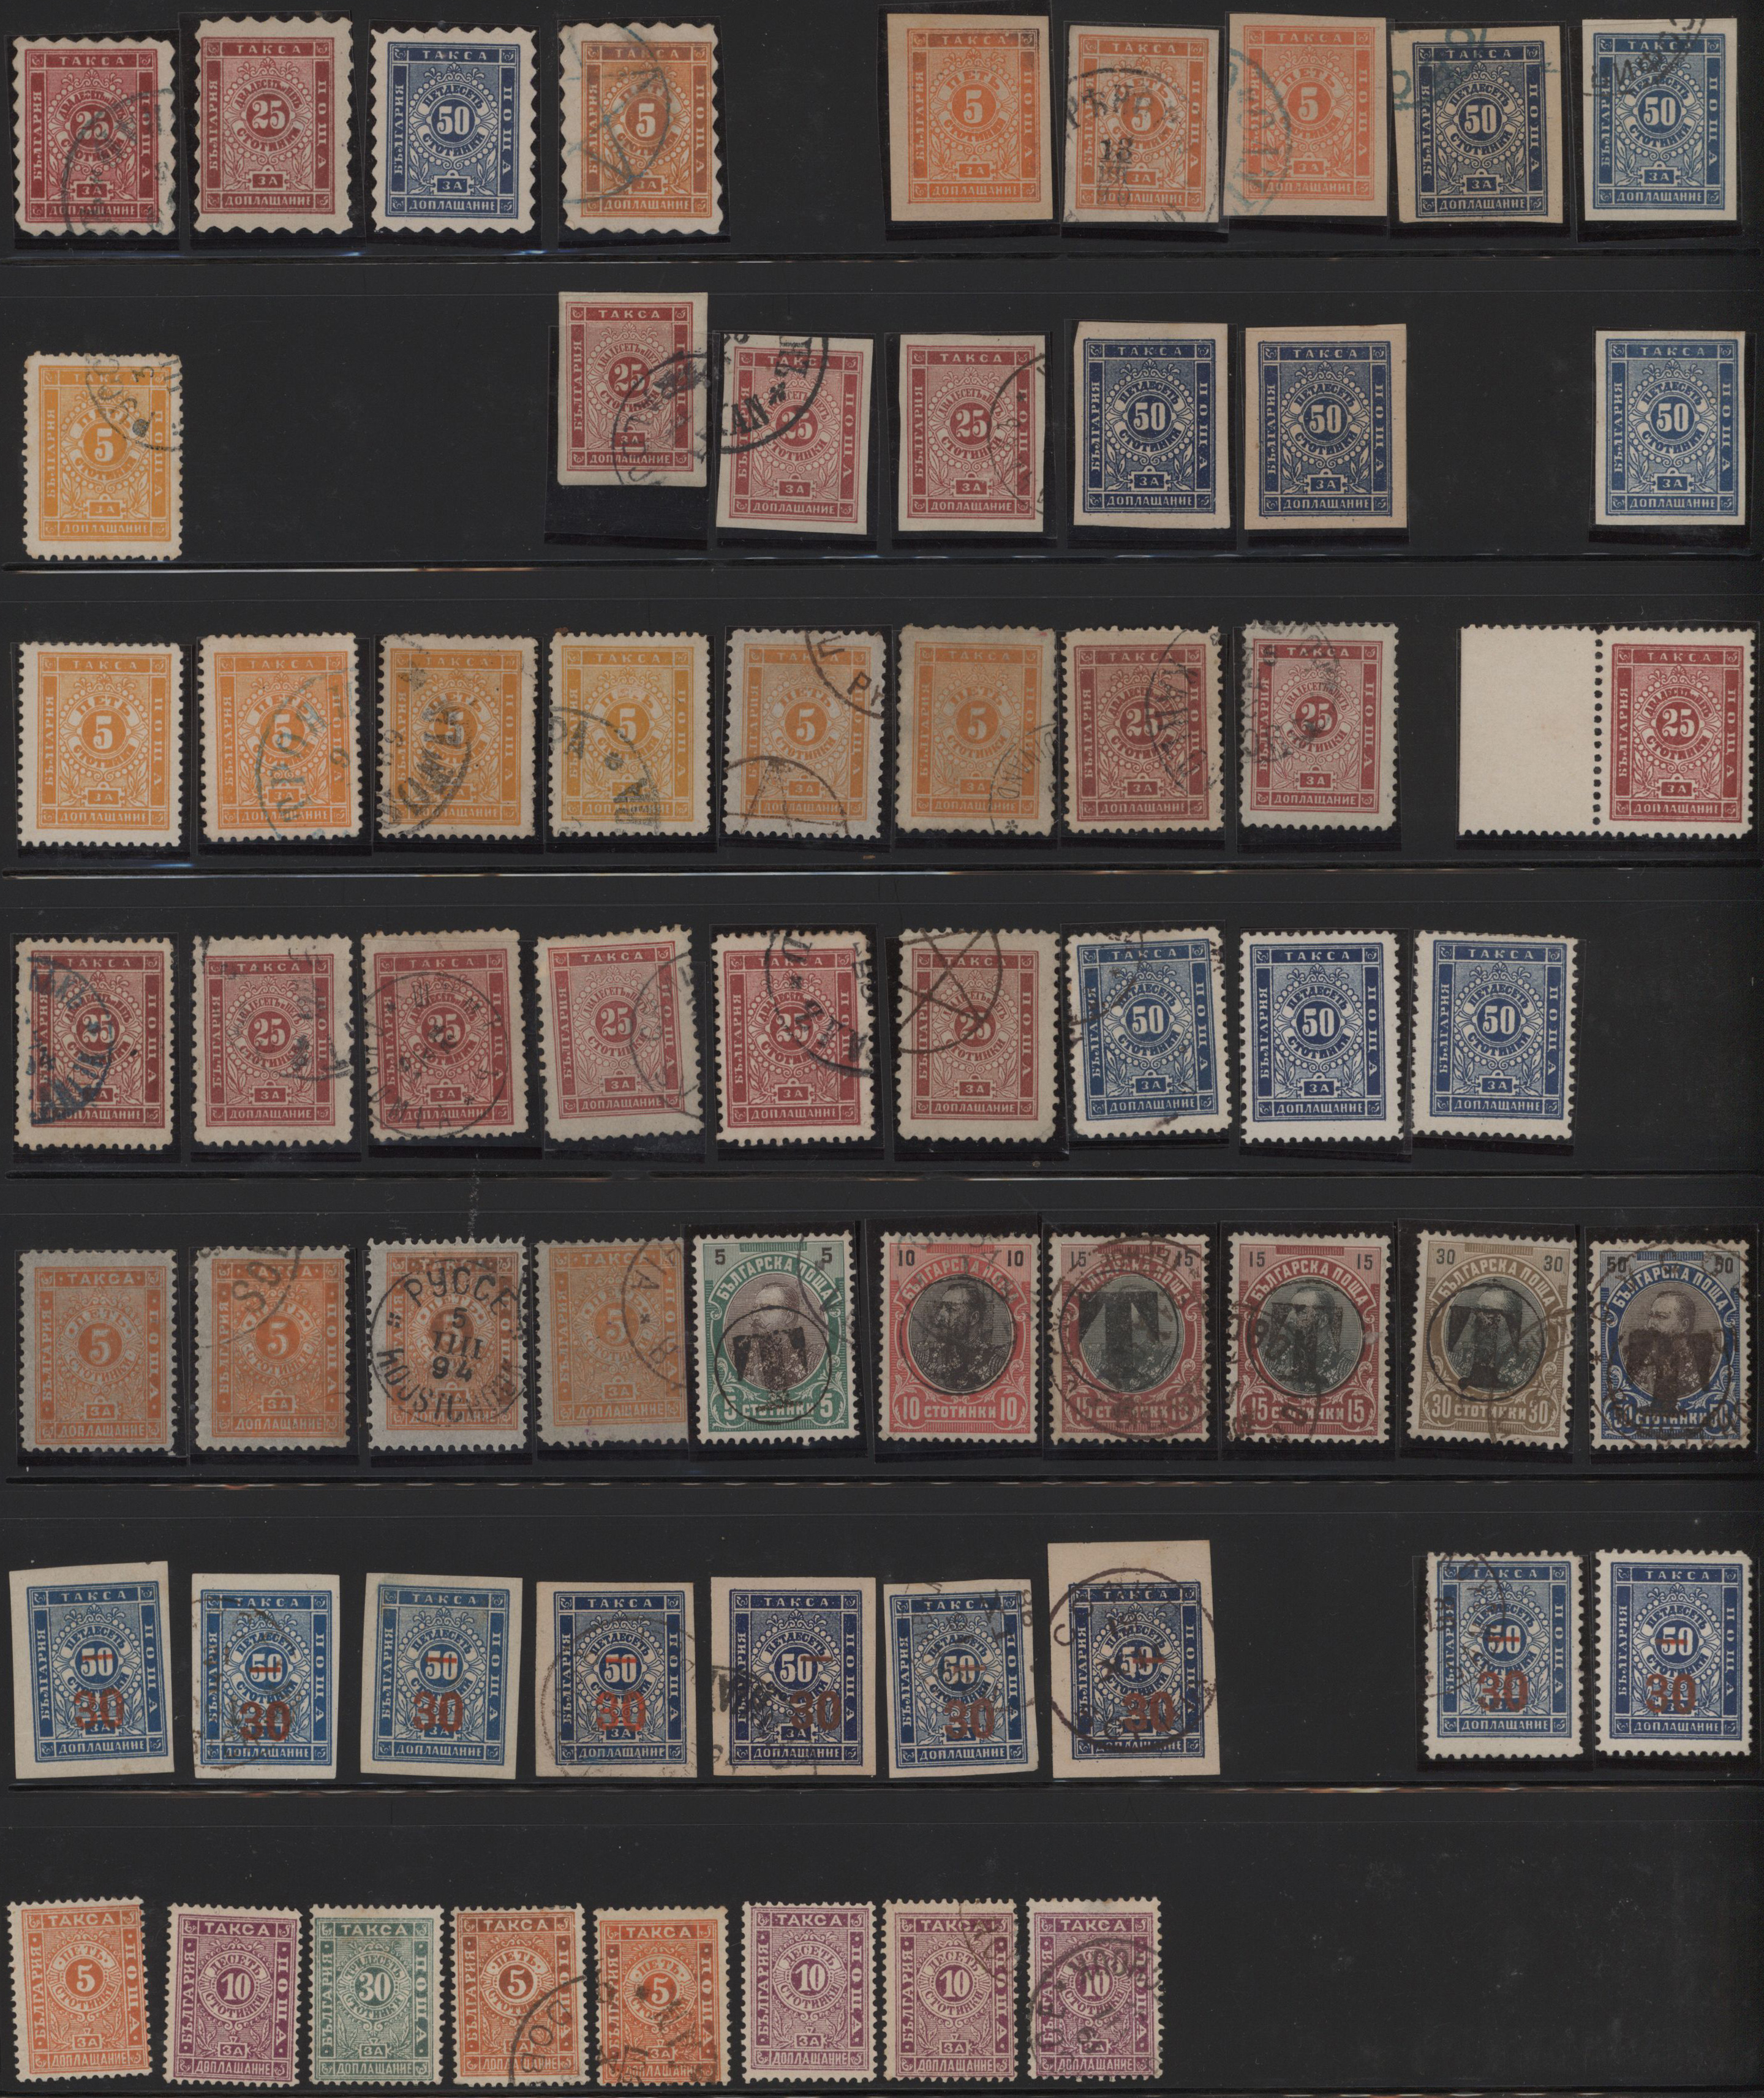 Lot 23757 - bulgarien  -  Auktionshaus Christoph Gärtner GmbH & Co. KG Sale #46 Collections Worldwide